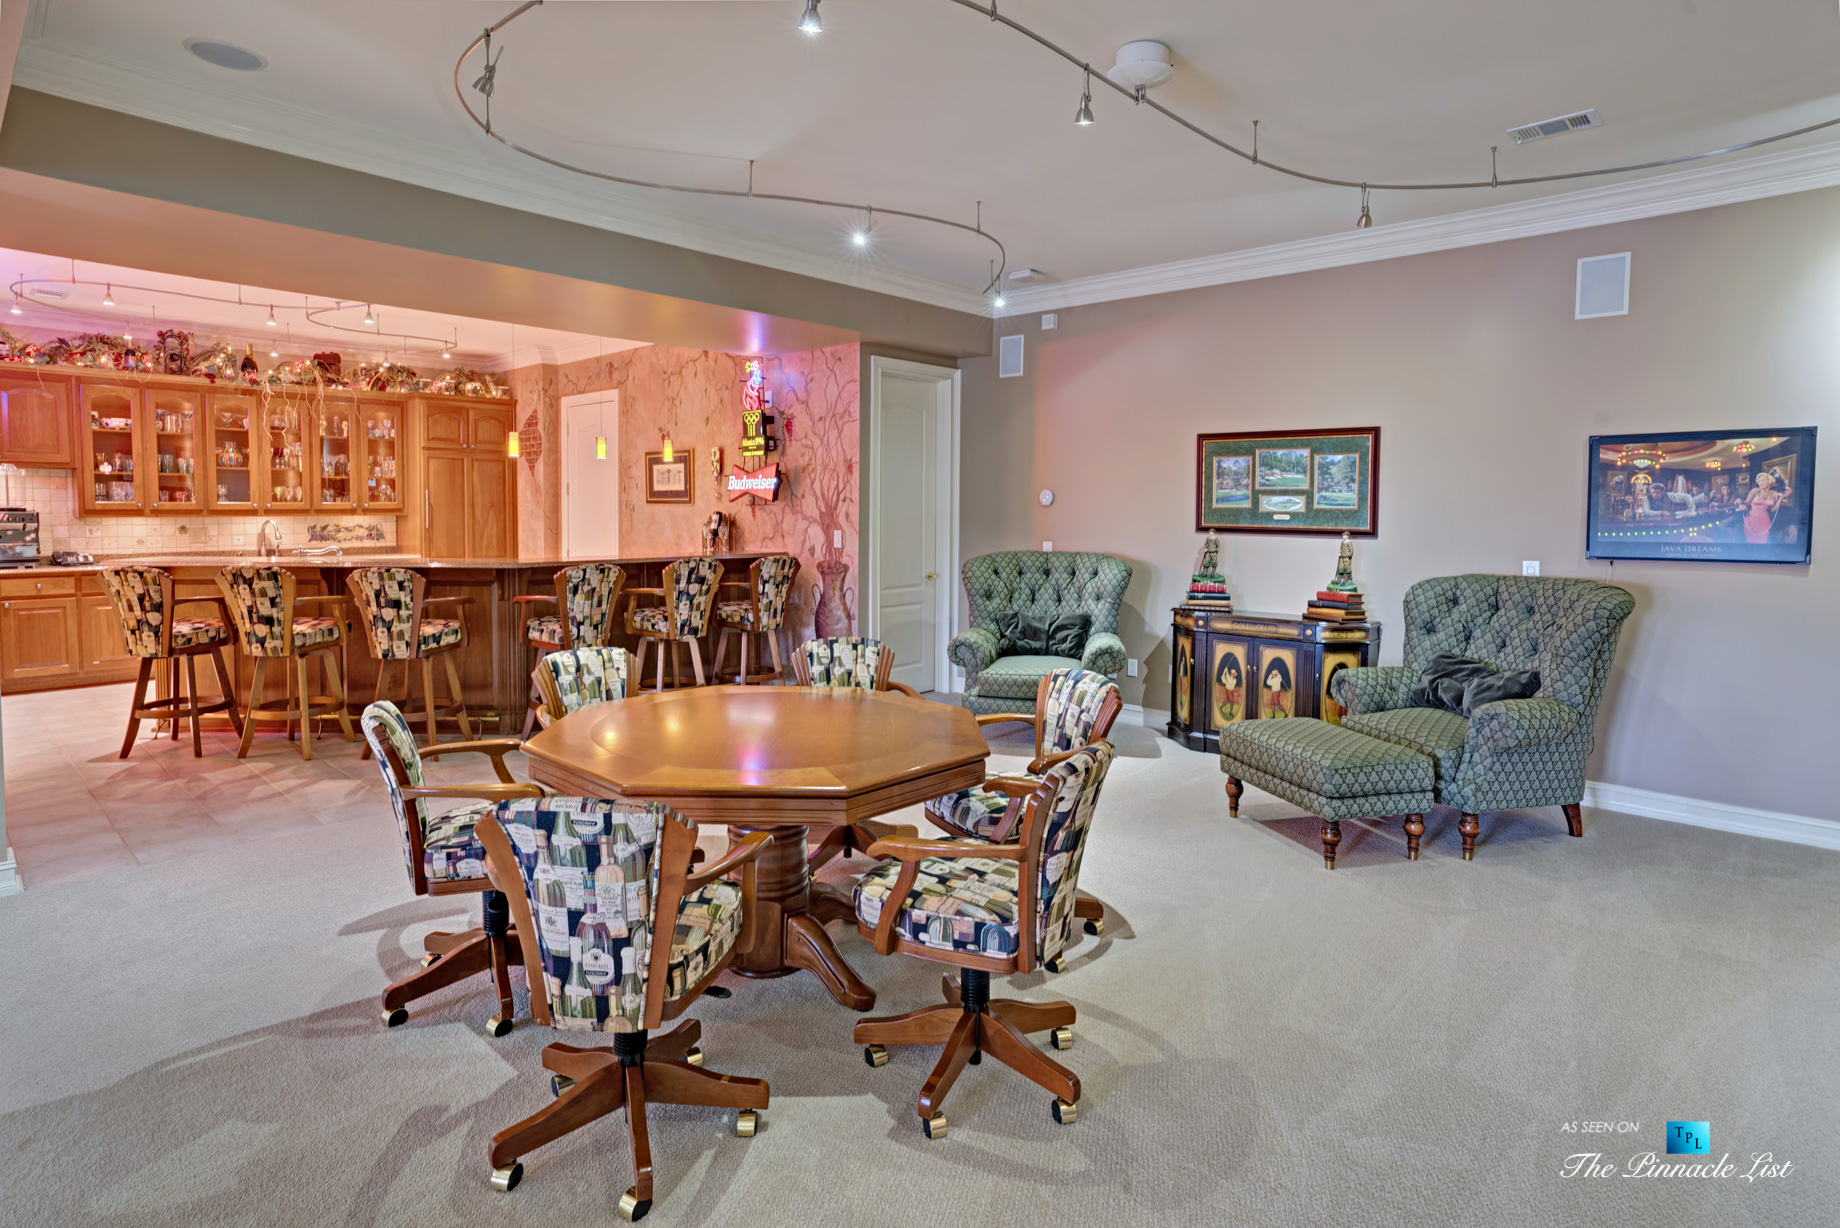 2219 Costley Mill Rd NE, Conyers, GA, USA – Recreation Room and Bar – Luxury Real Estate – Equestrian Country Home